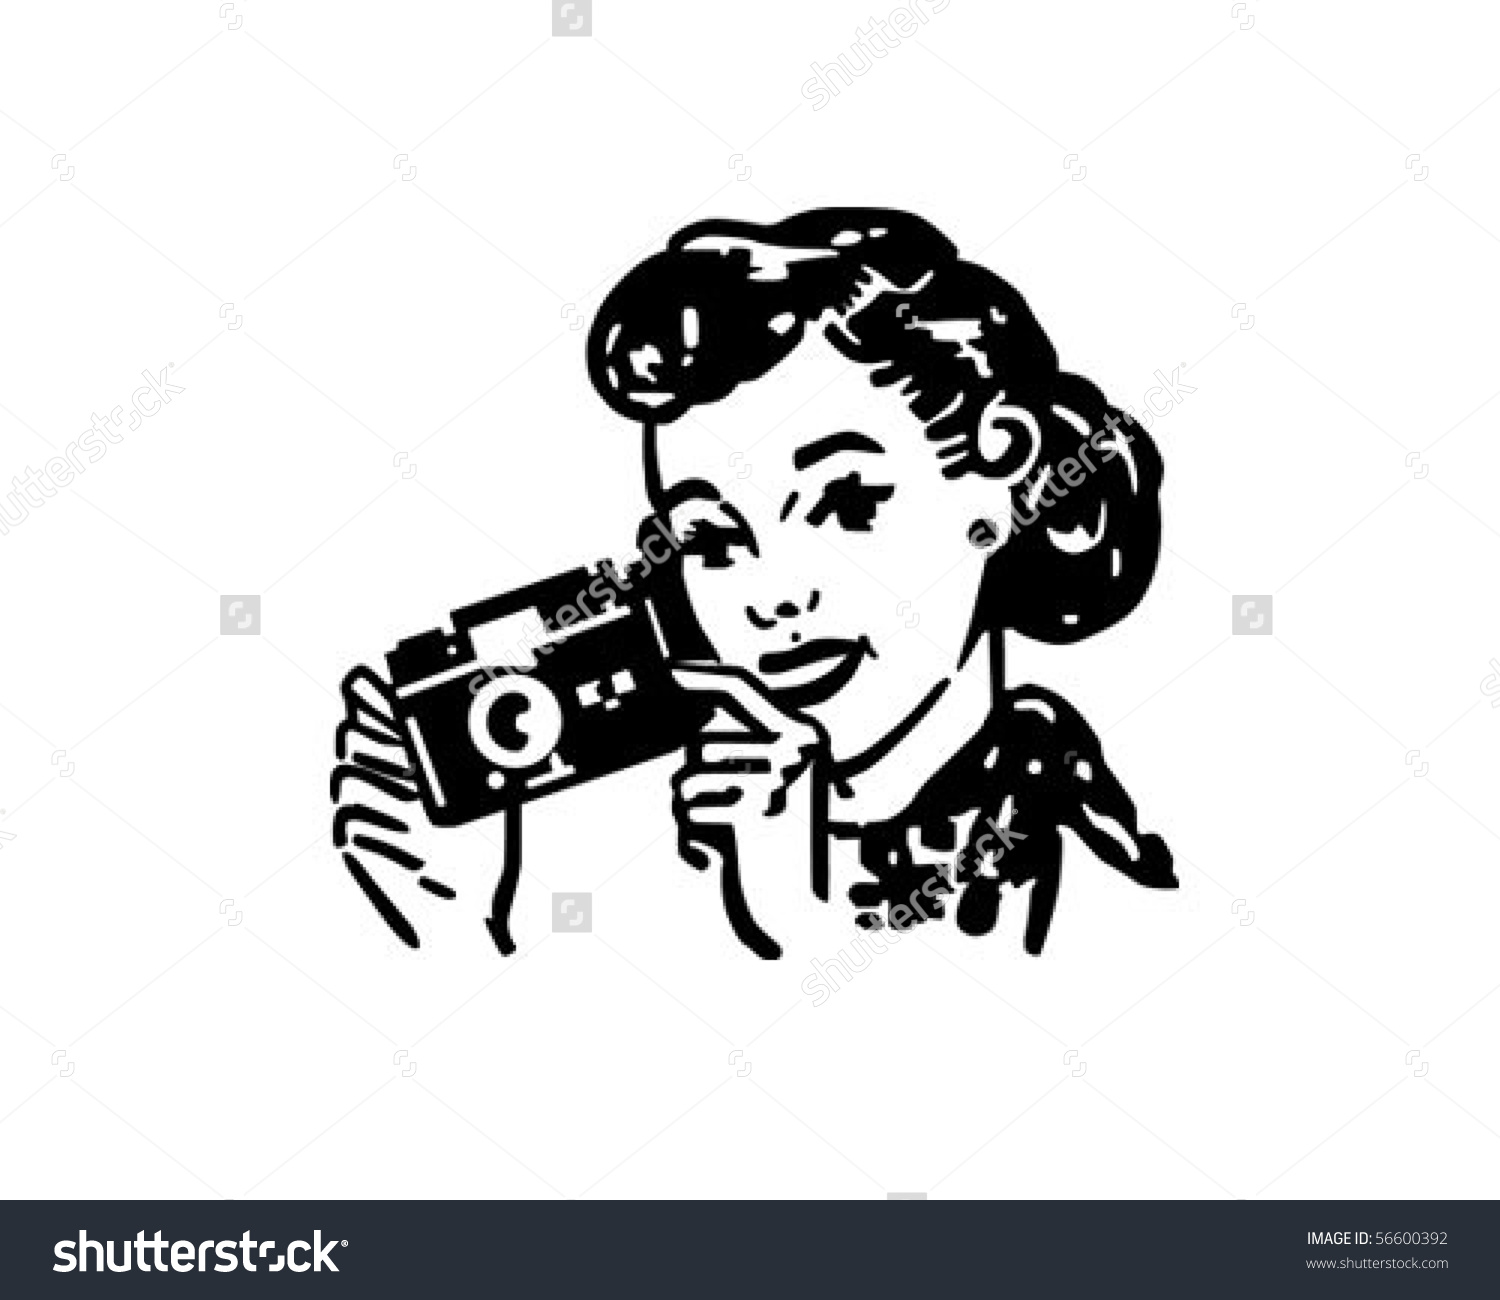 Woman Camera Retro Clip Art Stock Vector 56600392.